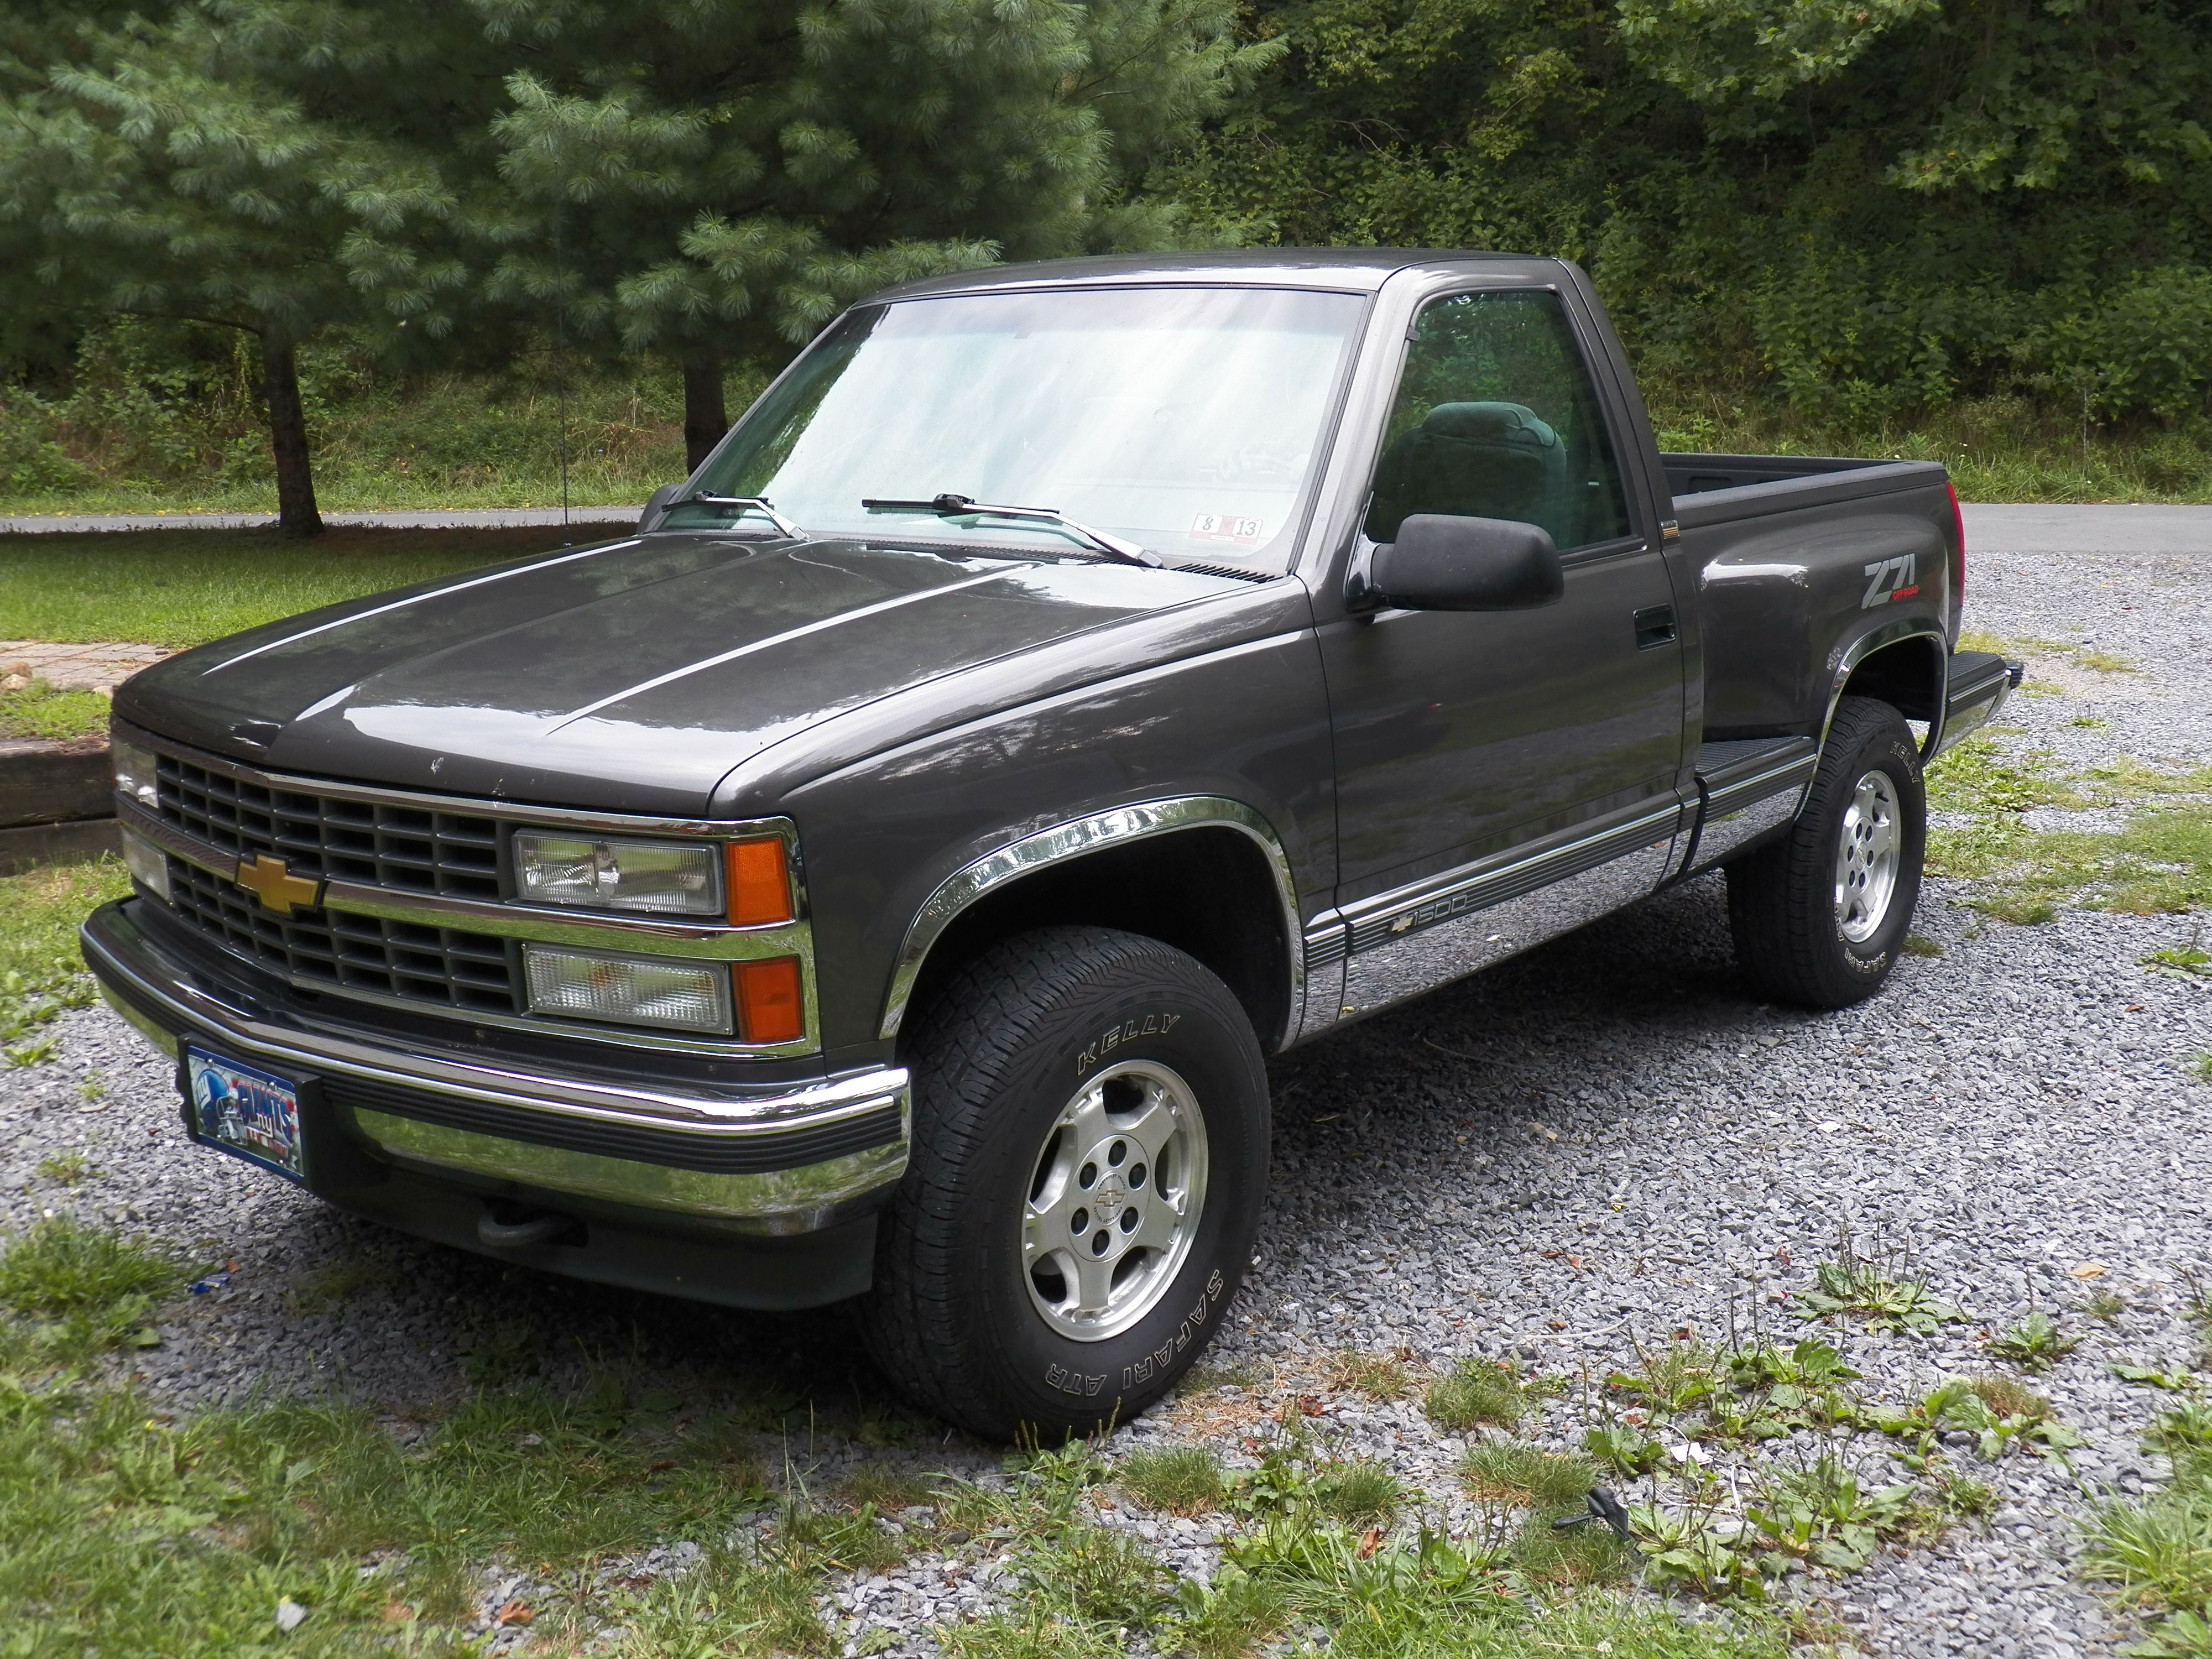 small resolution of my pretty baby 1994 chevy stepside truck 350 z71 gunmetal grey i ve wanted one of these since i was a teen bought this one about 3 weeks ago 3